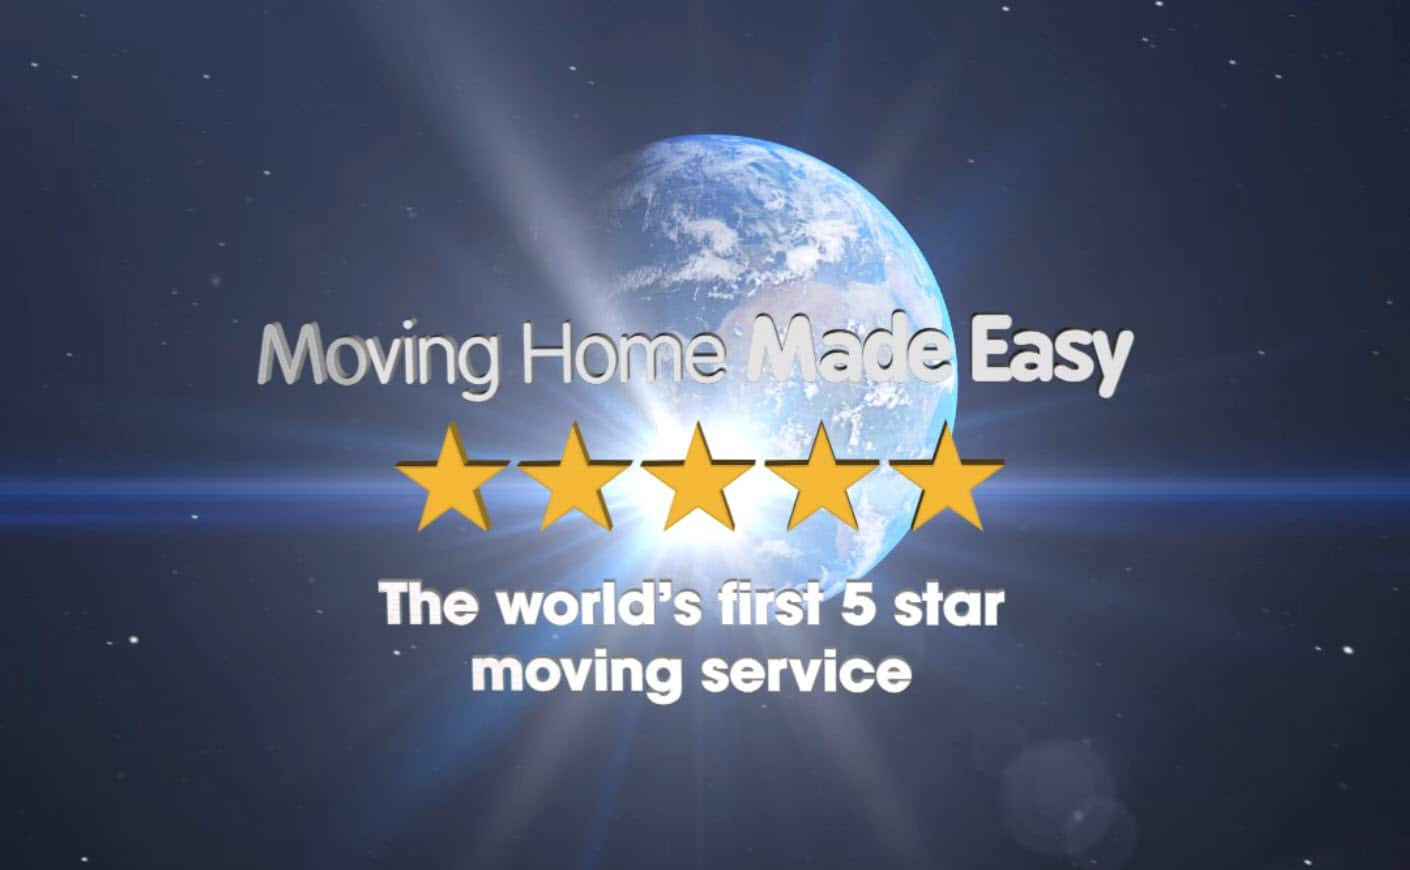 moving home made easy 5 star service